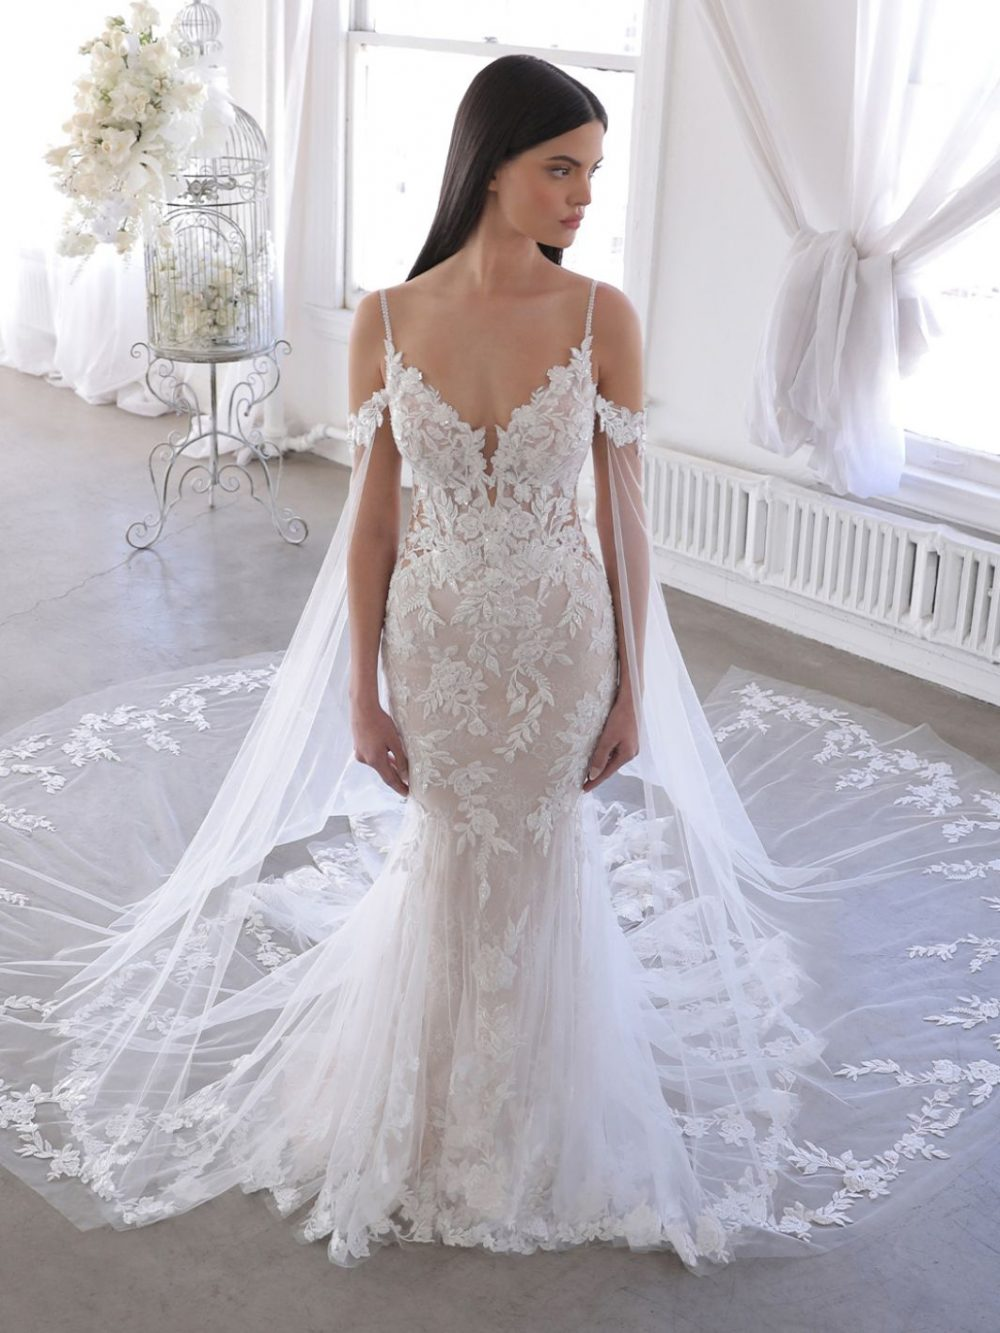 Wedding dress Olana from Blue by Enzoani available at Emily Bridalwear in Sheffield, Yorkshire